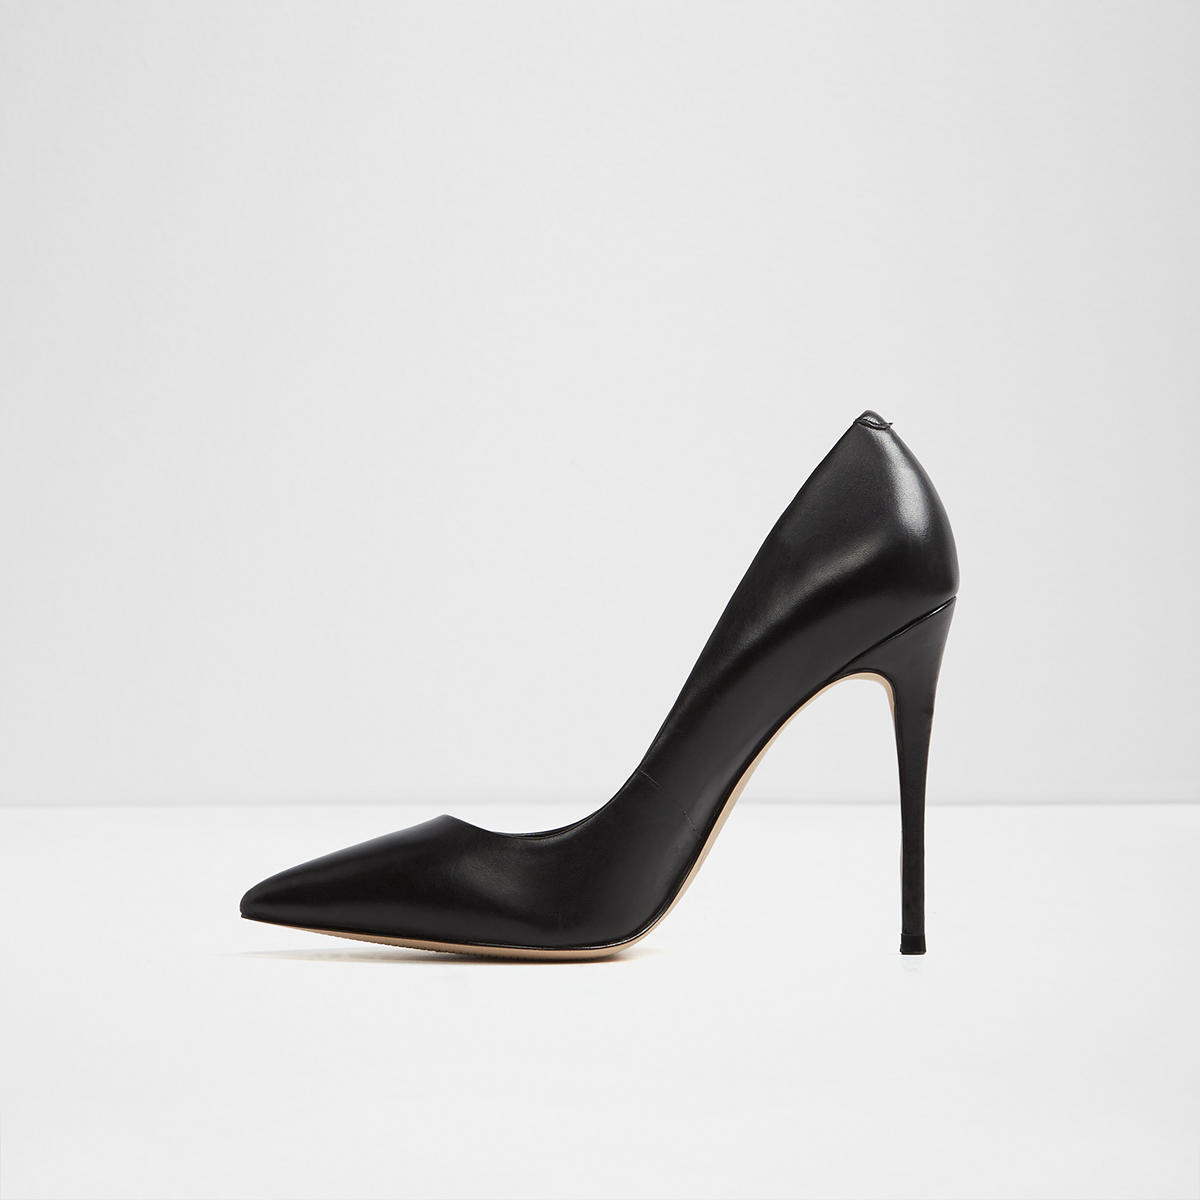 f2556b6003 Stessy Black Leather Women's Pumps | Aldoshoes.com US